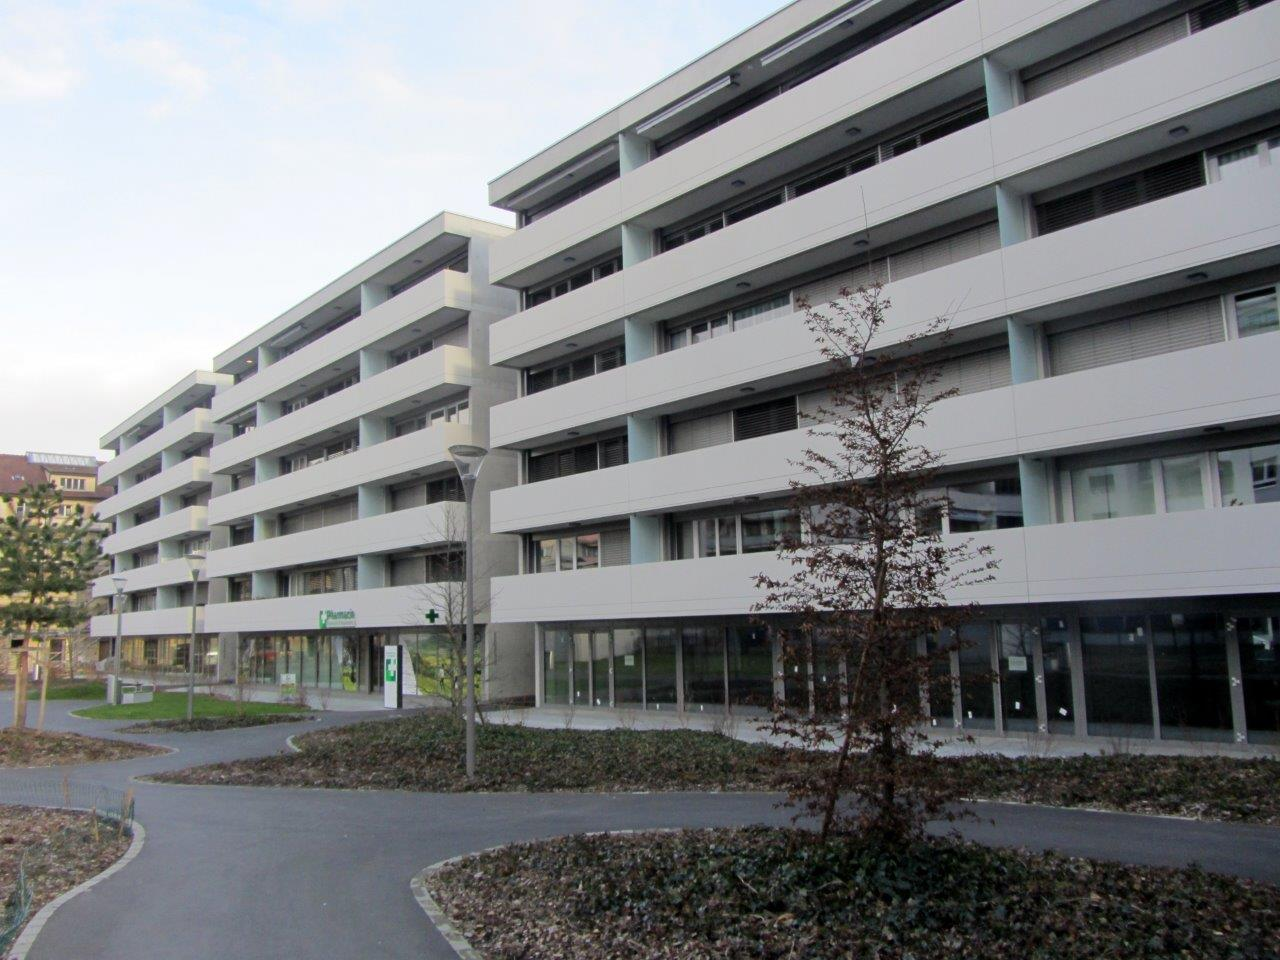 10.	3 immeubles de logements et parking souterrain